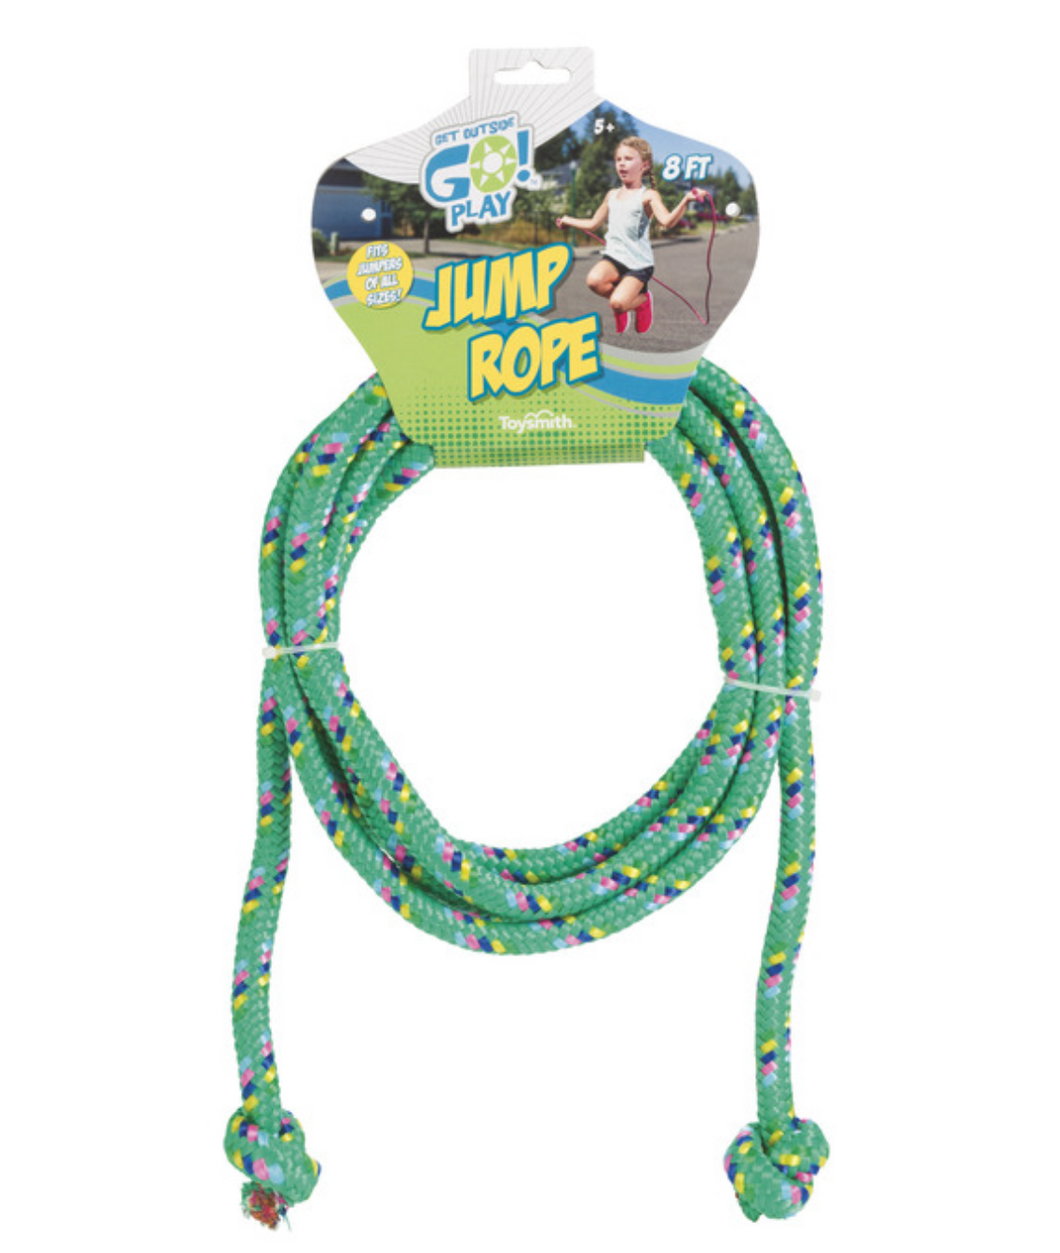 Go Play Green Jump rope